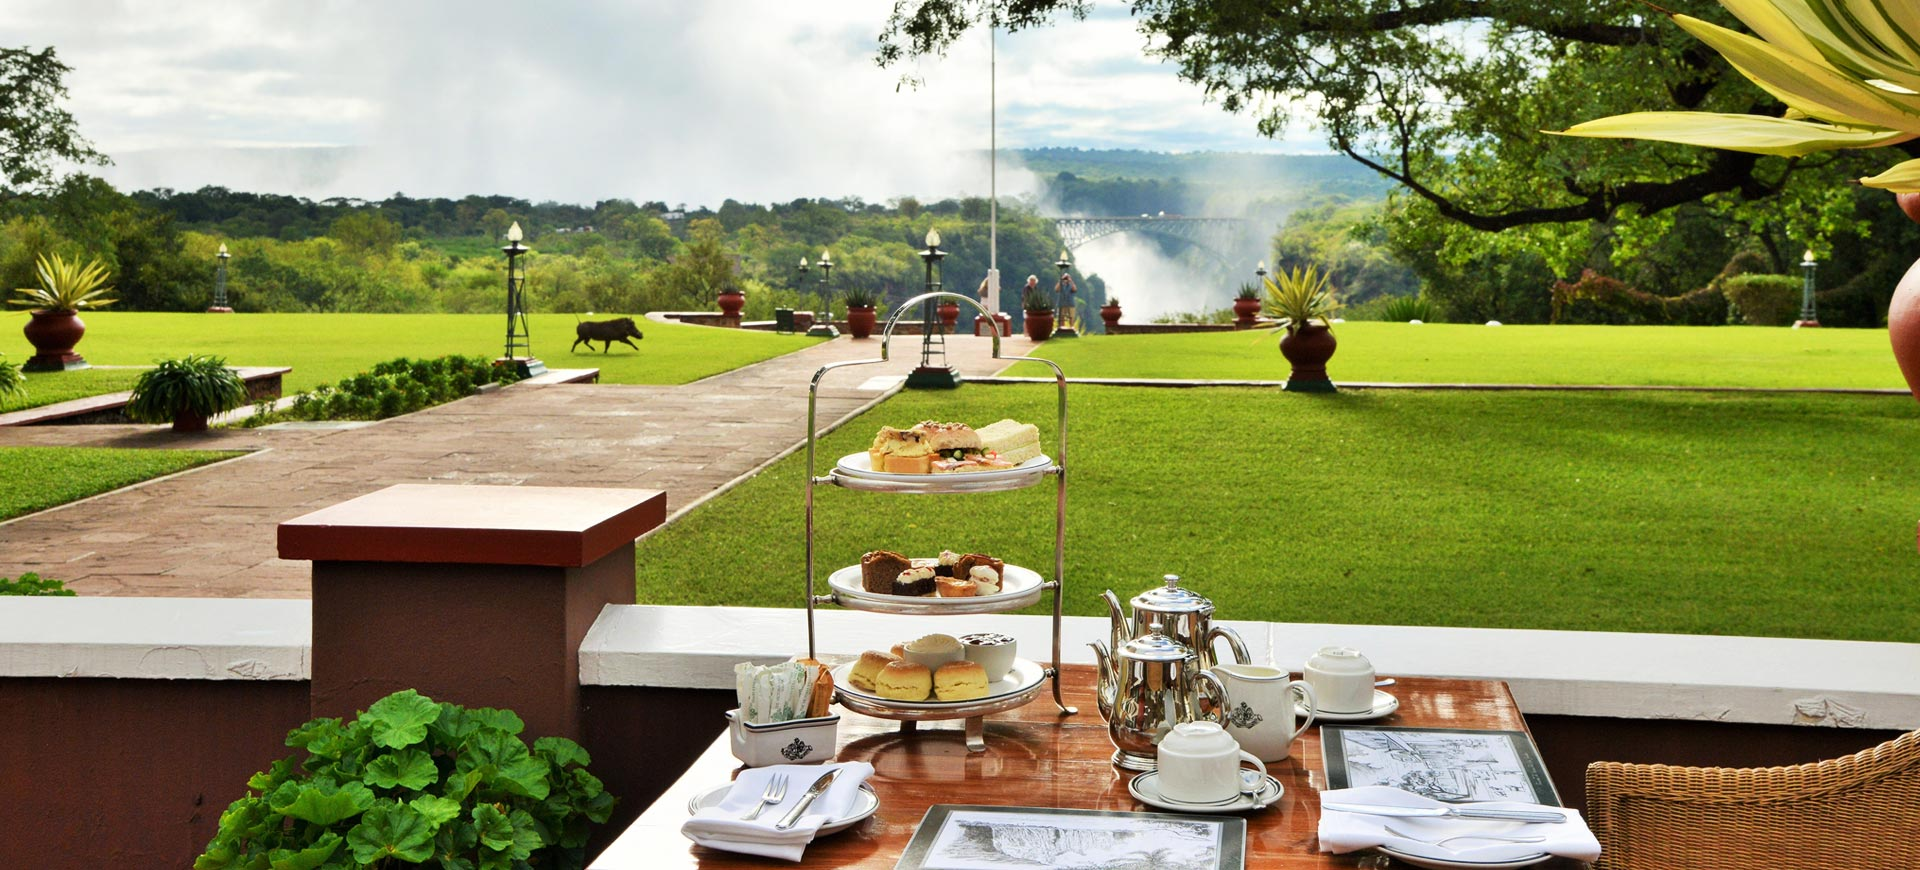 High Tea At Victoria Falls Hotel